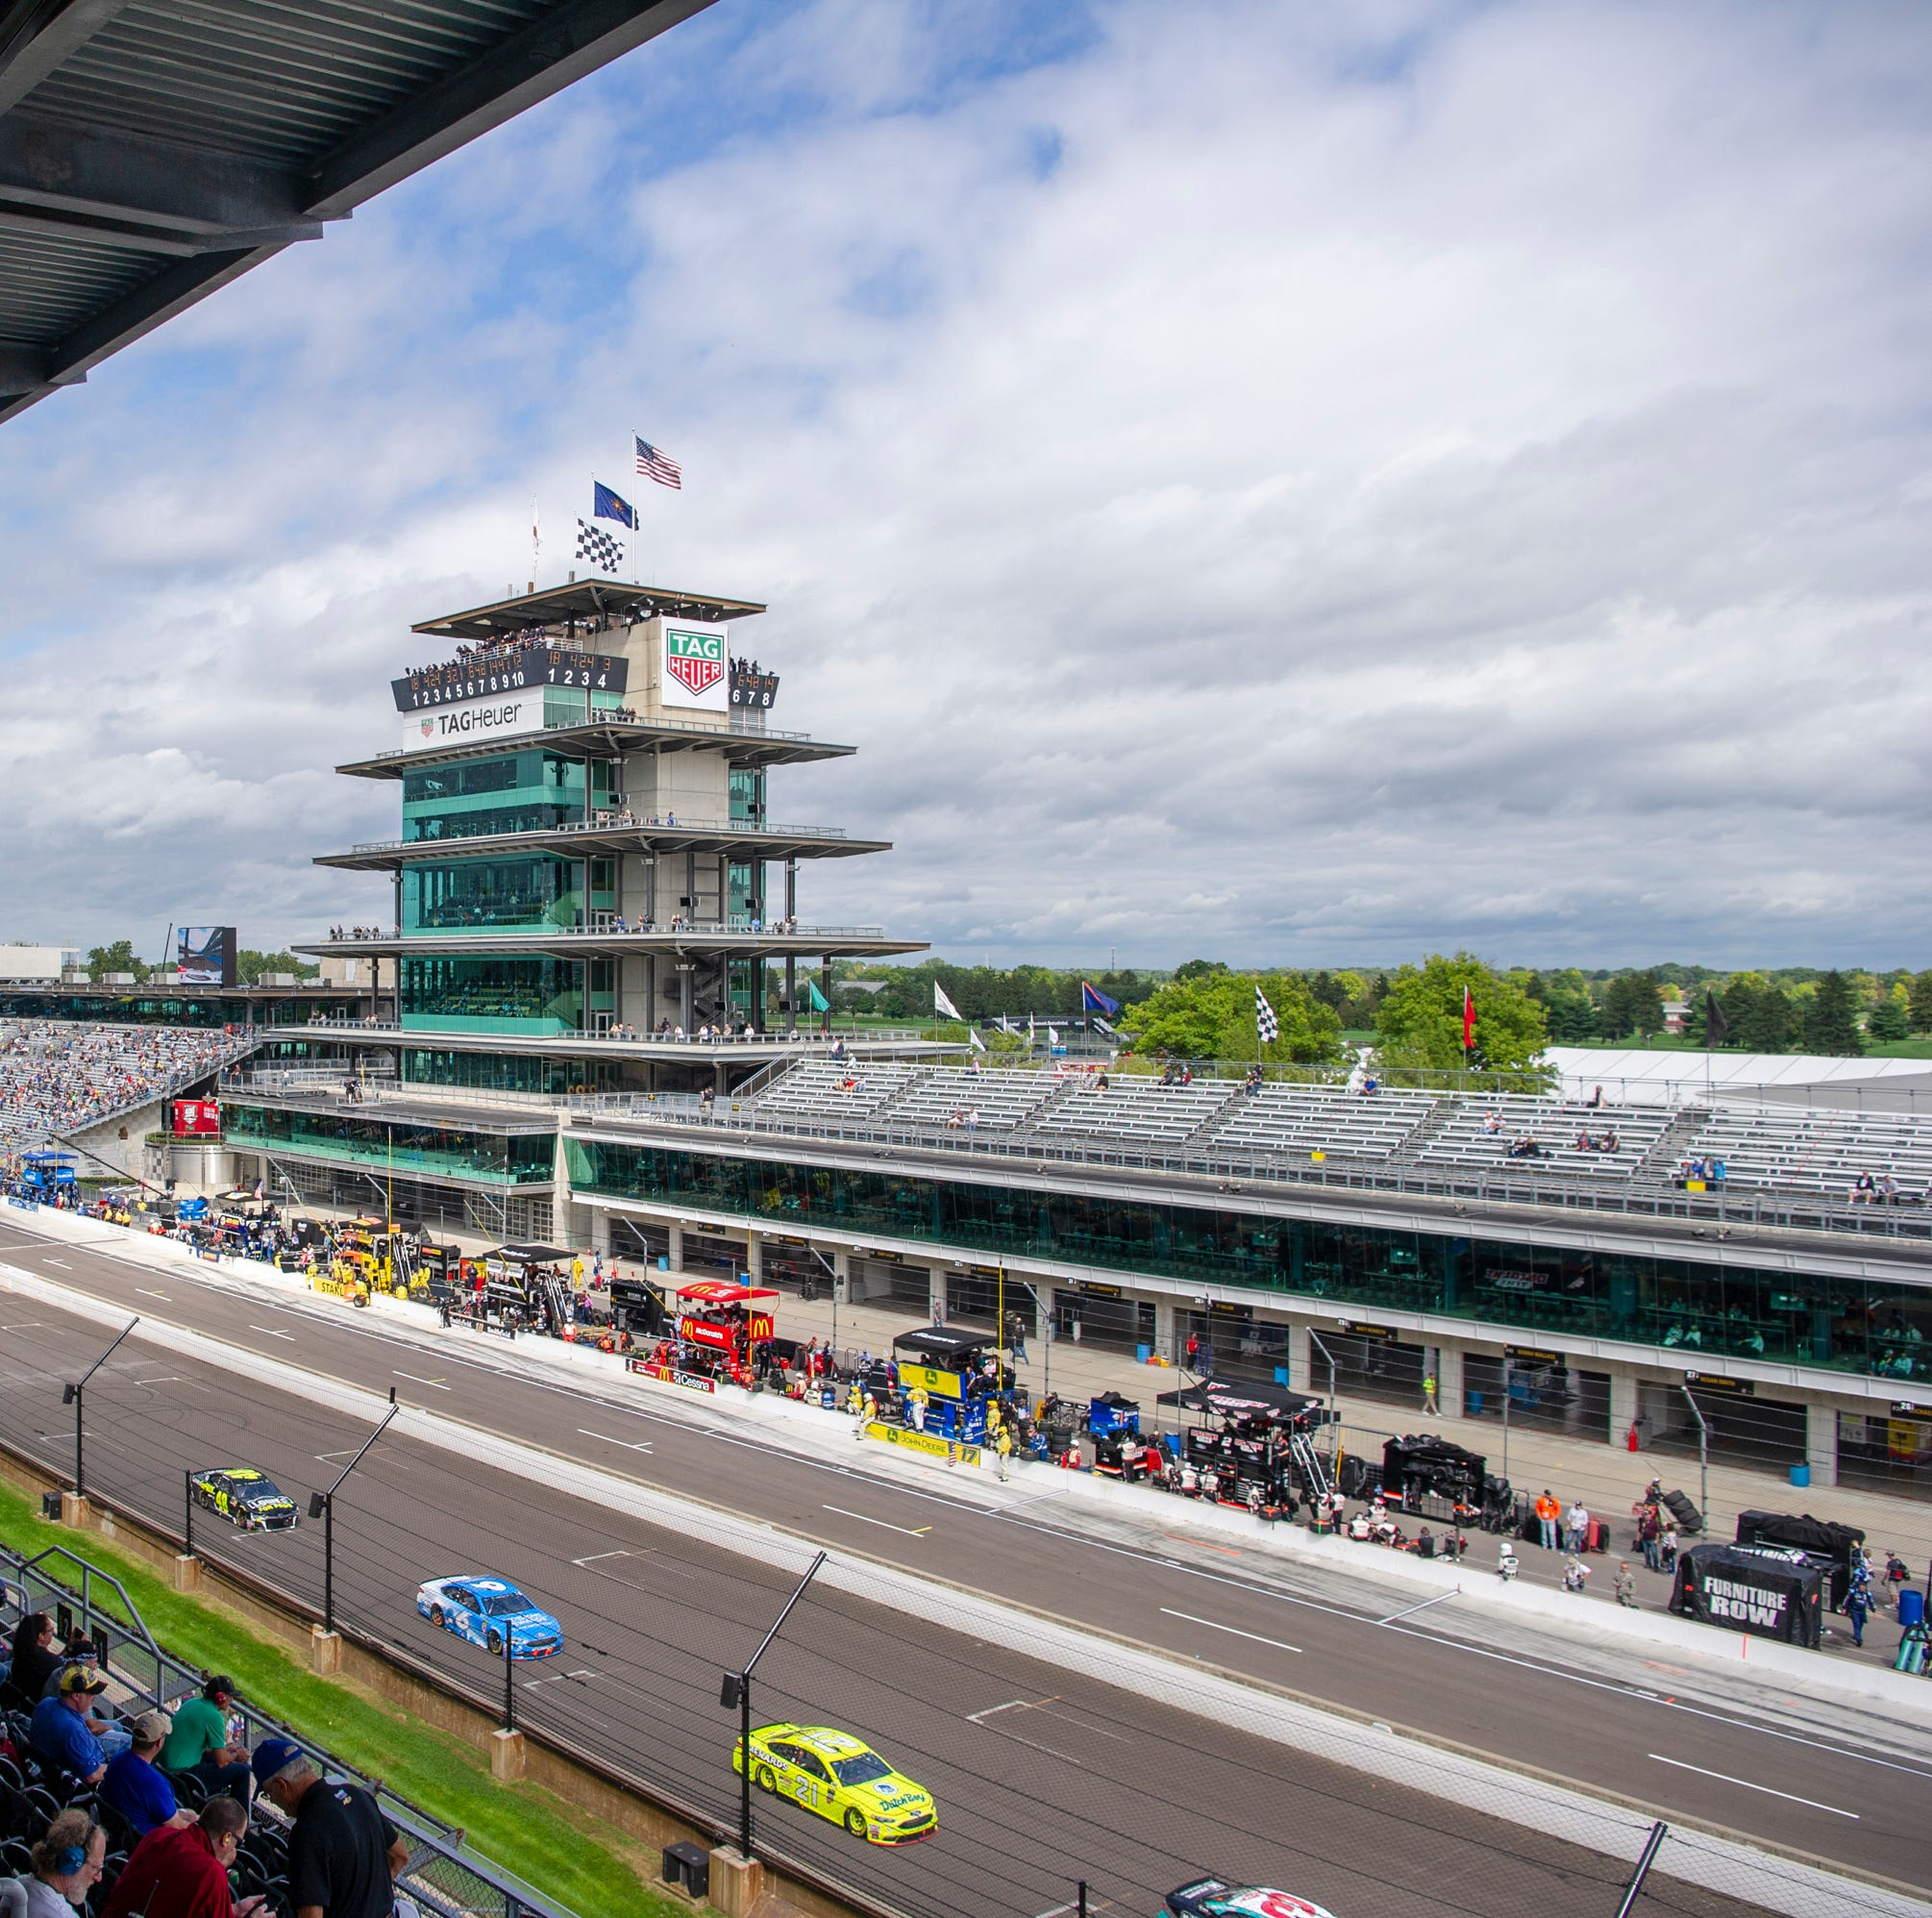 A scene toward the Pagoda during the rain-delayed running of the 25th Brickyard 400 at Indianapolis Motor Speedway Monday, Sept. 10, 2018.